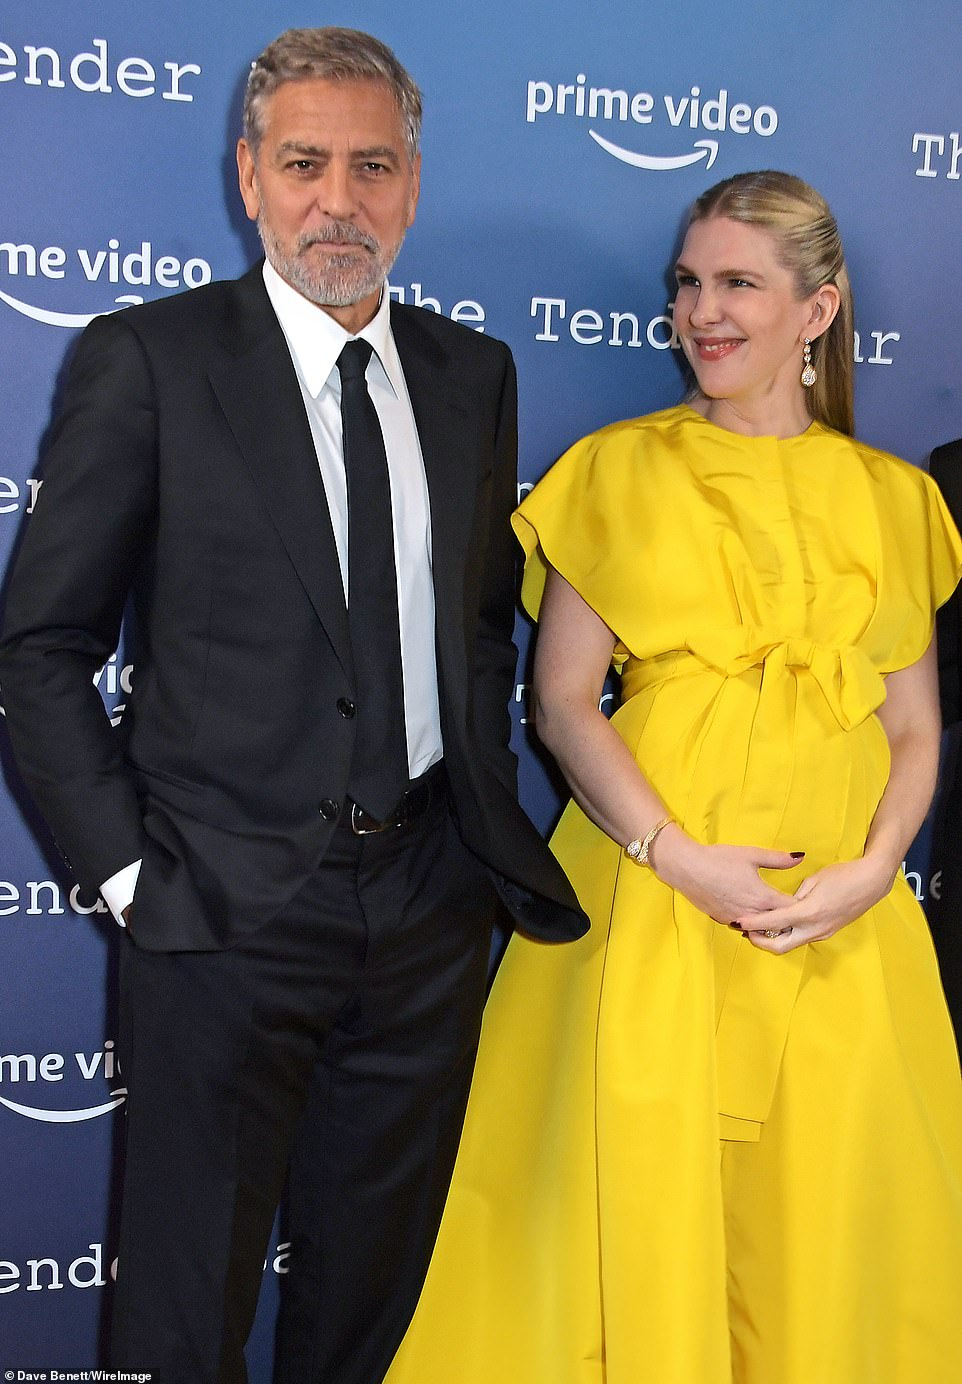 Happy:Accentuating her natural beauty with a full face of make-up, the American Horror Story cast member beamed with delight as co-star George Clooney joined her for a series of snaps